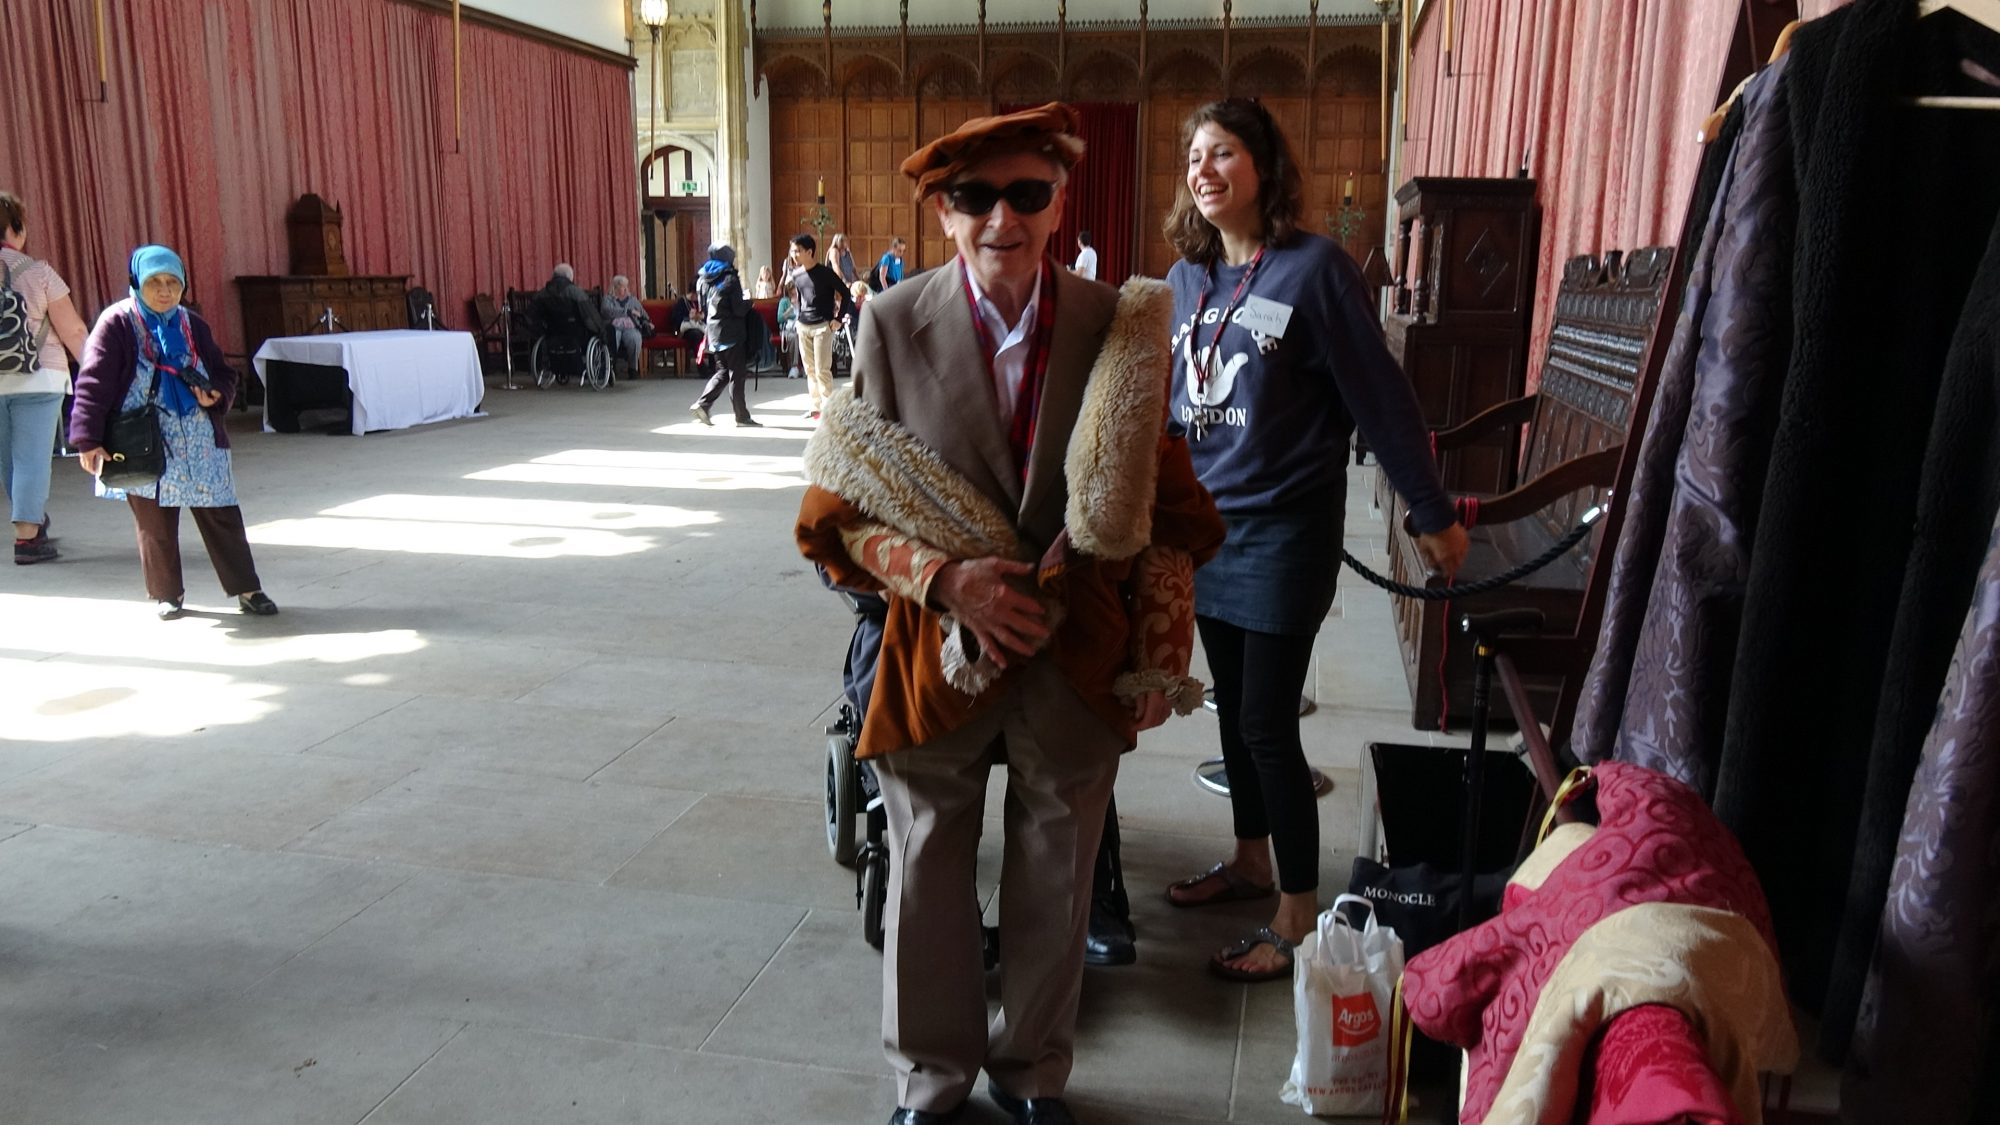 Man dressed up in historical clothing with sunglasses in a big hall